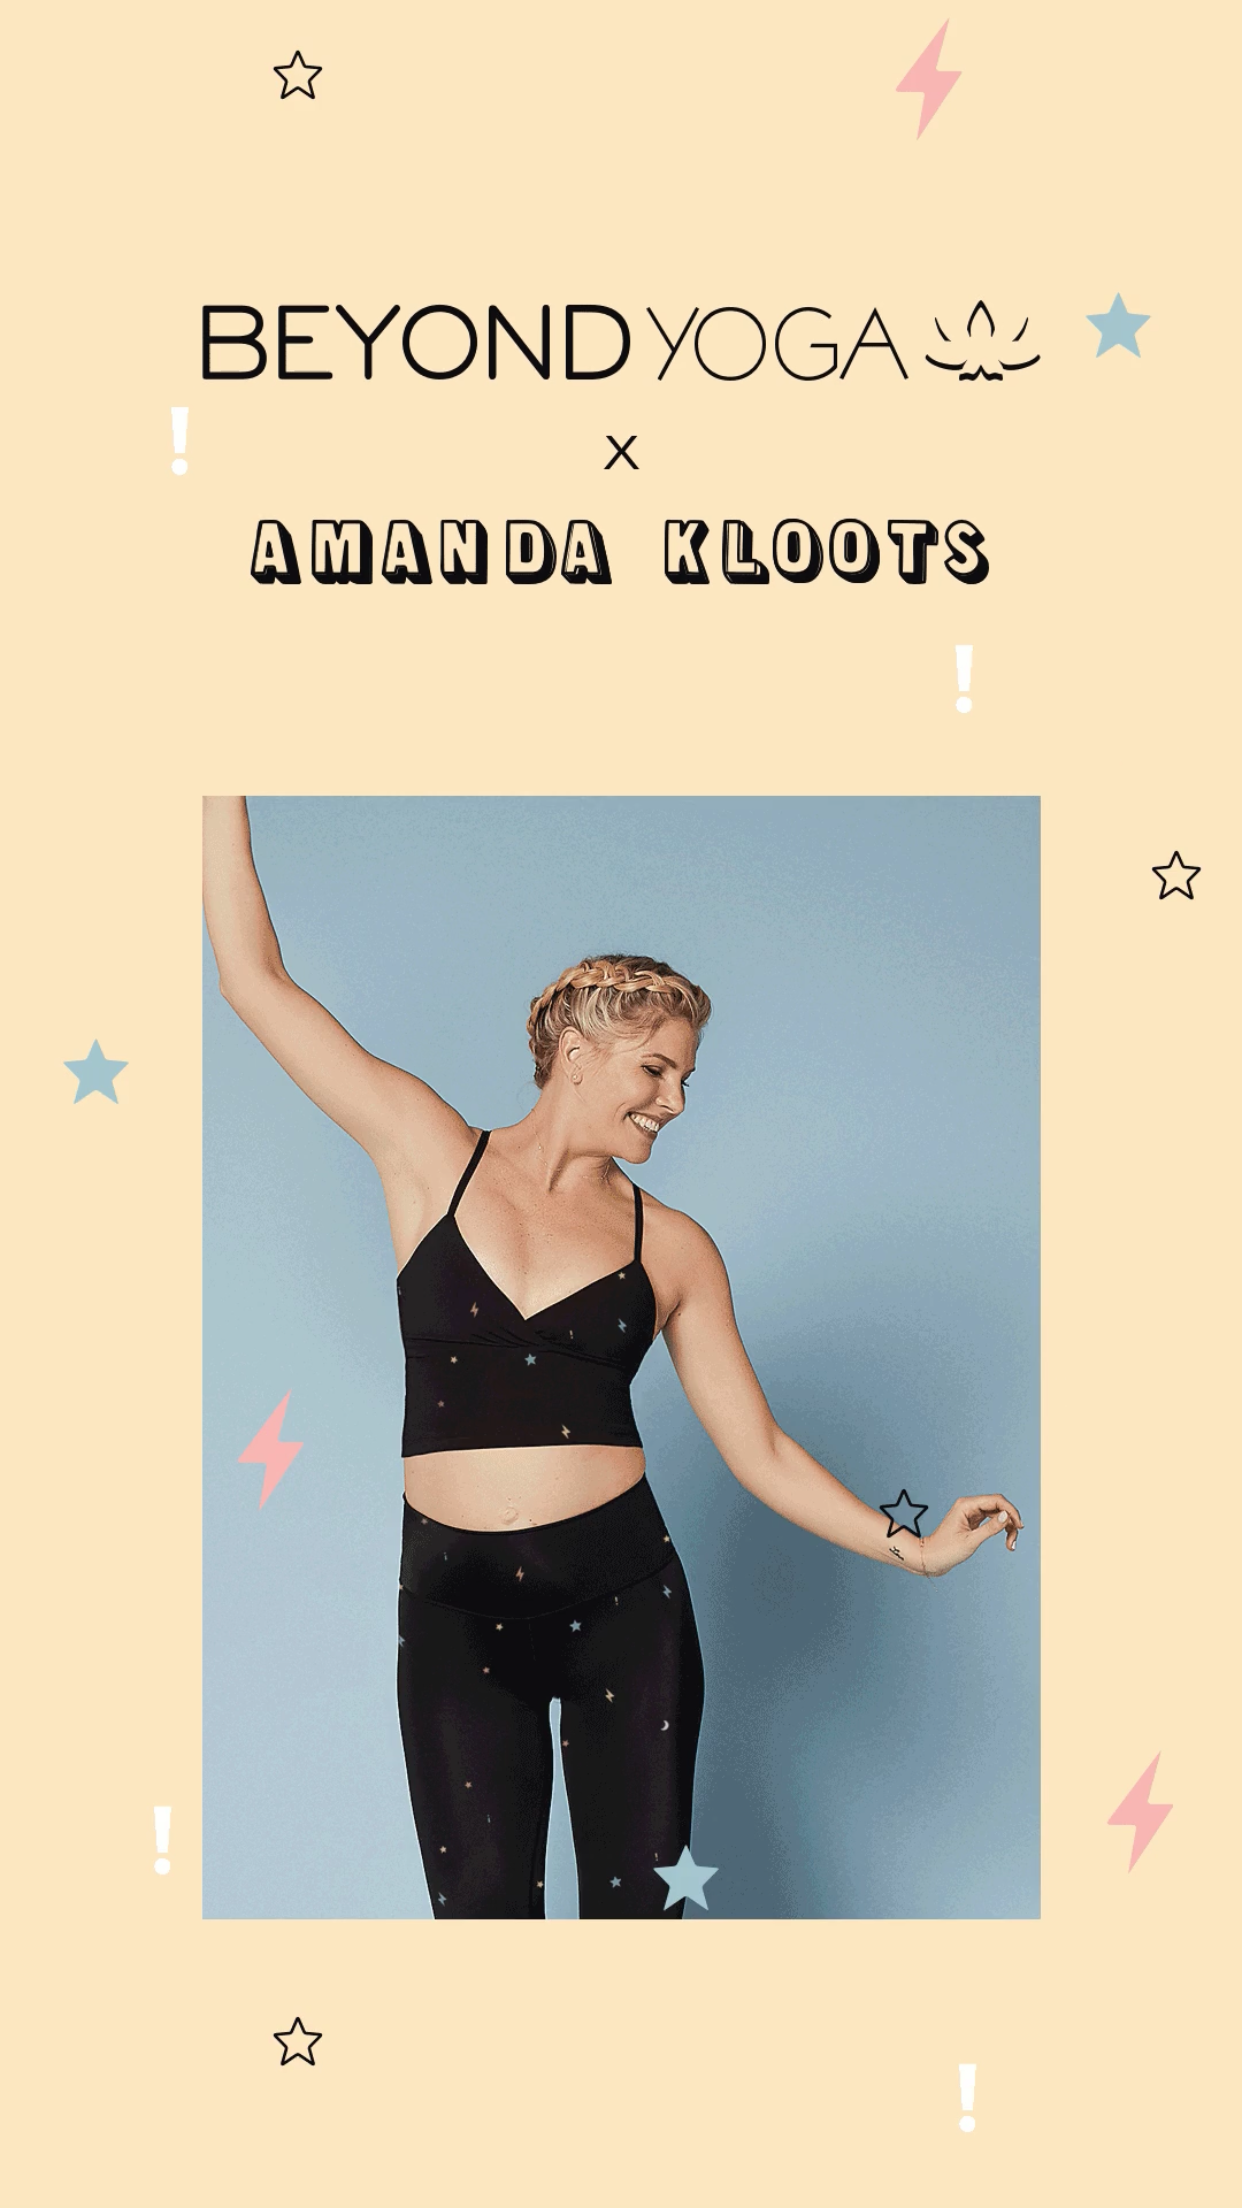 - IT'S HERE!!BEYOND YOGA x AMANDA KLOOTSShop the collection NOW. This collaboration with Beyond Yoga is made for women who want to jump right in and defy the limits.Check out everything from my favorite one piece, to the crop top, bra and leggings!Tag me in your BY x AK